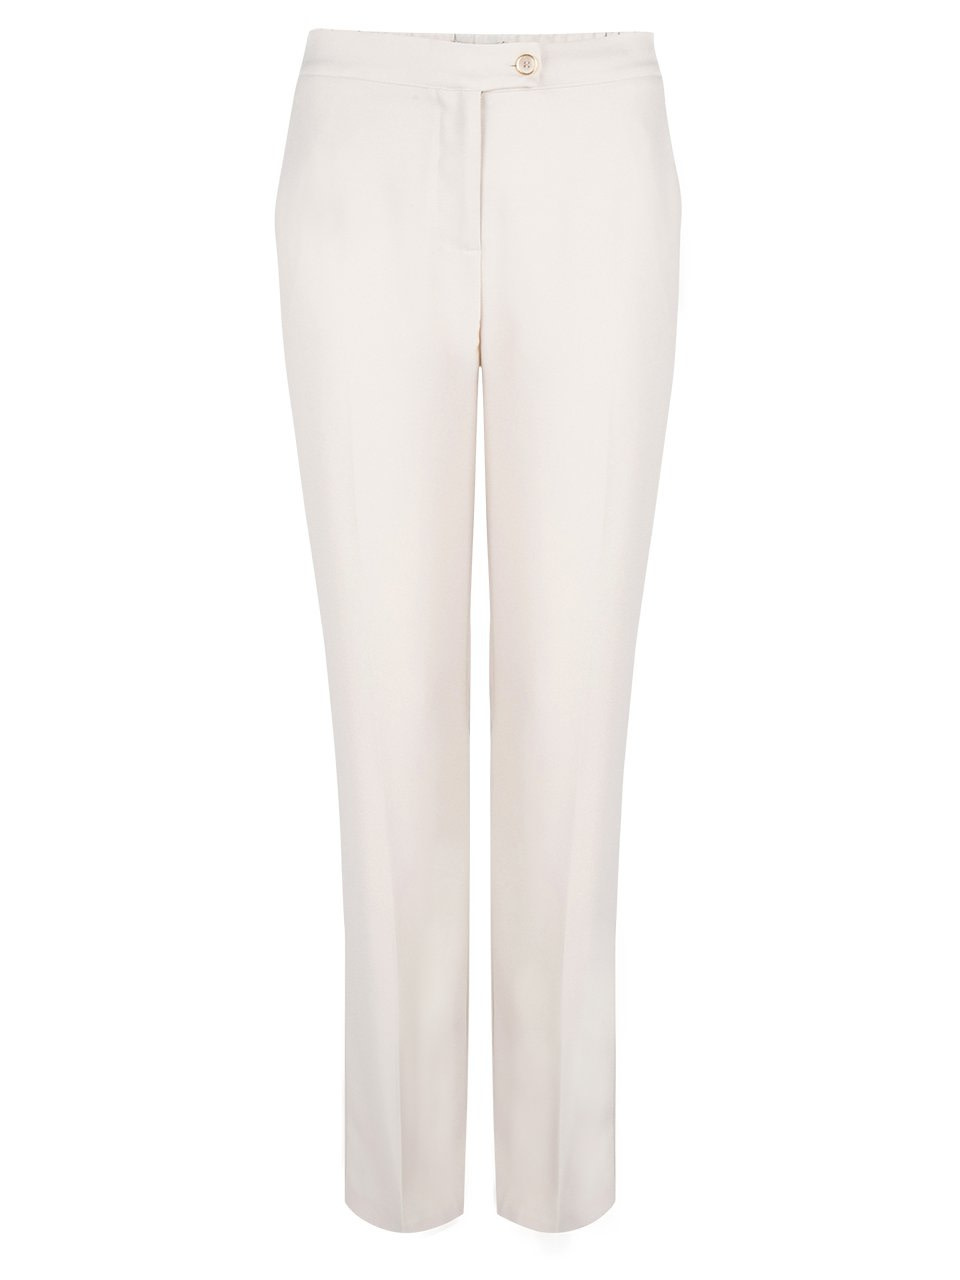 Alison satin striped pants-1